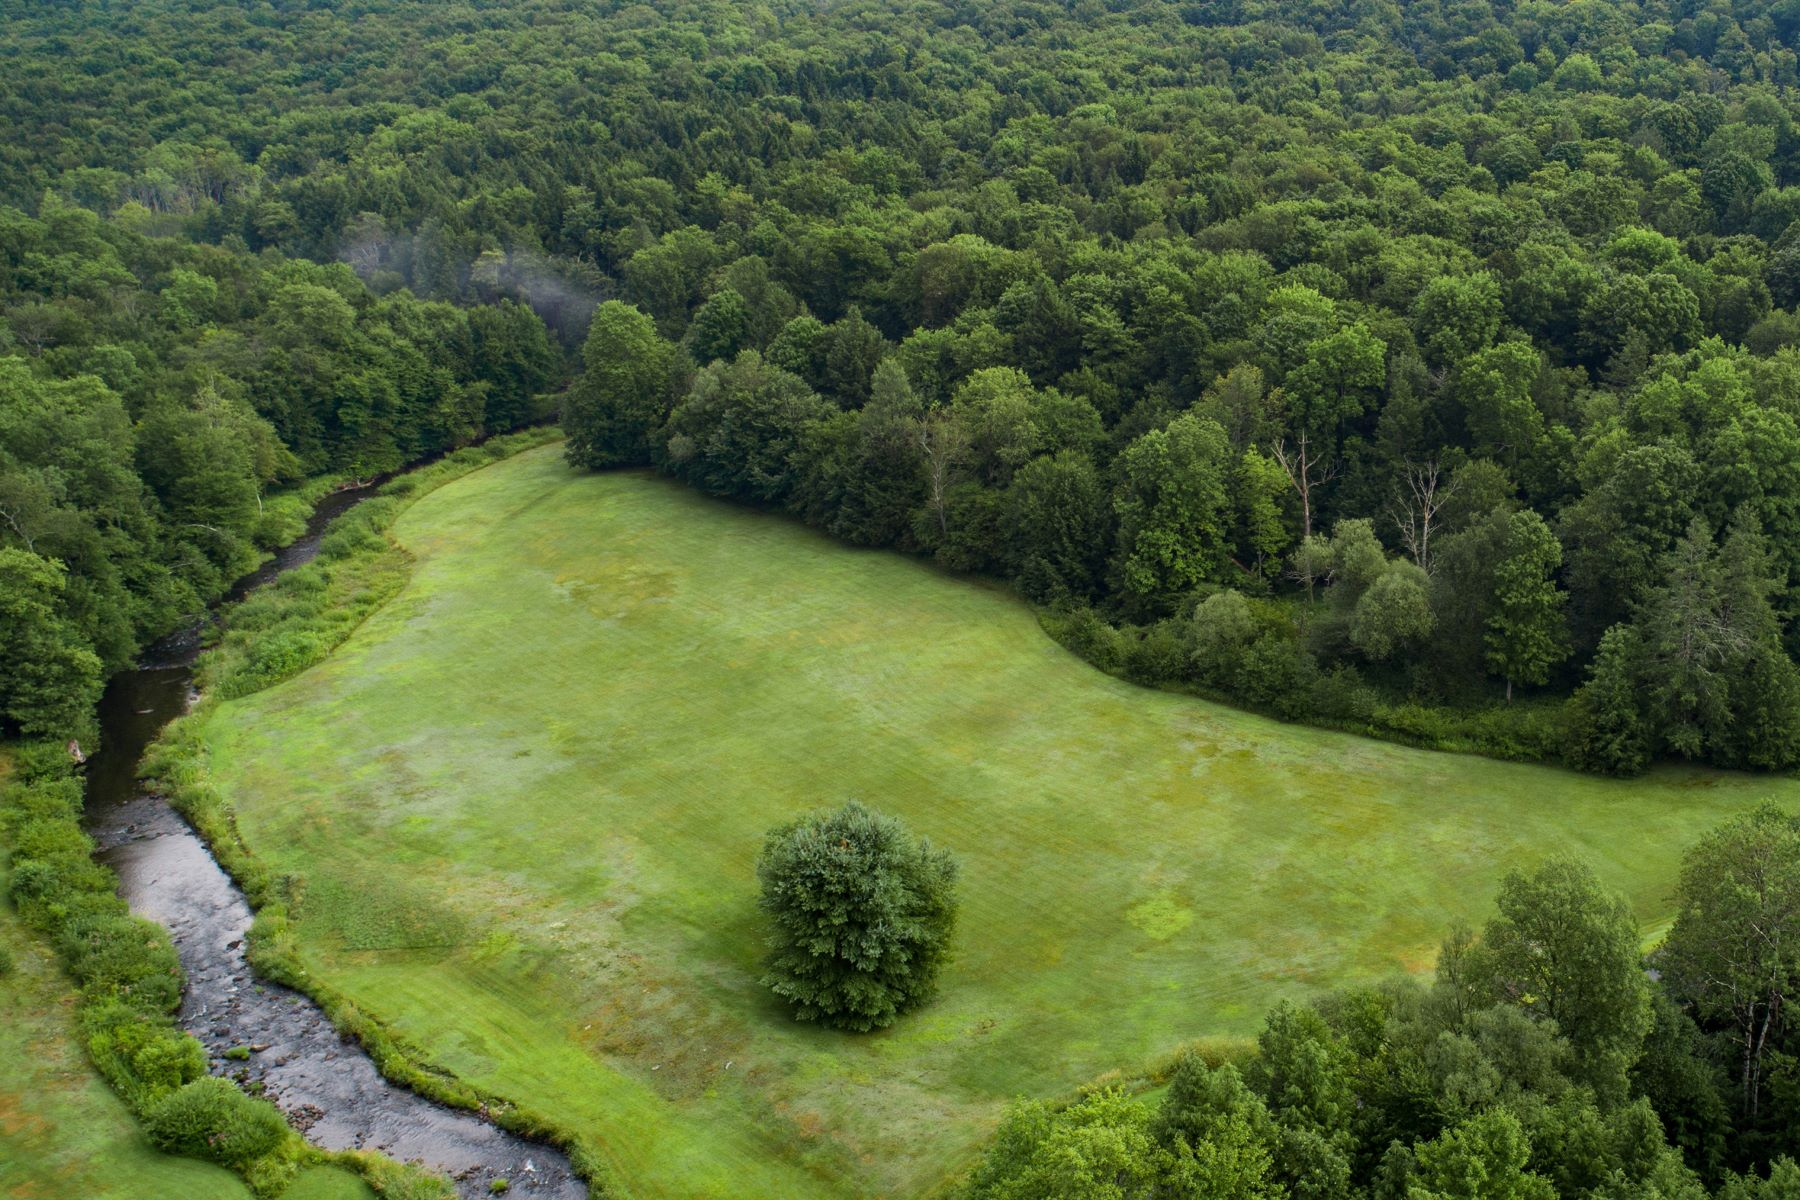 Land for Sale at Lake Wallenpaupack Area 00 Sawmill Rd, Greentown, Pennsylvania 18426 United States